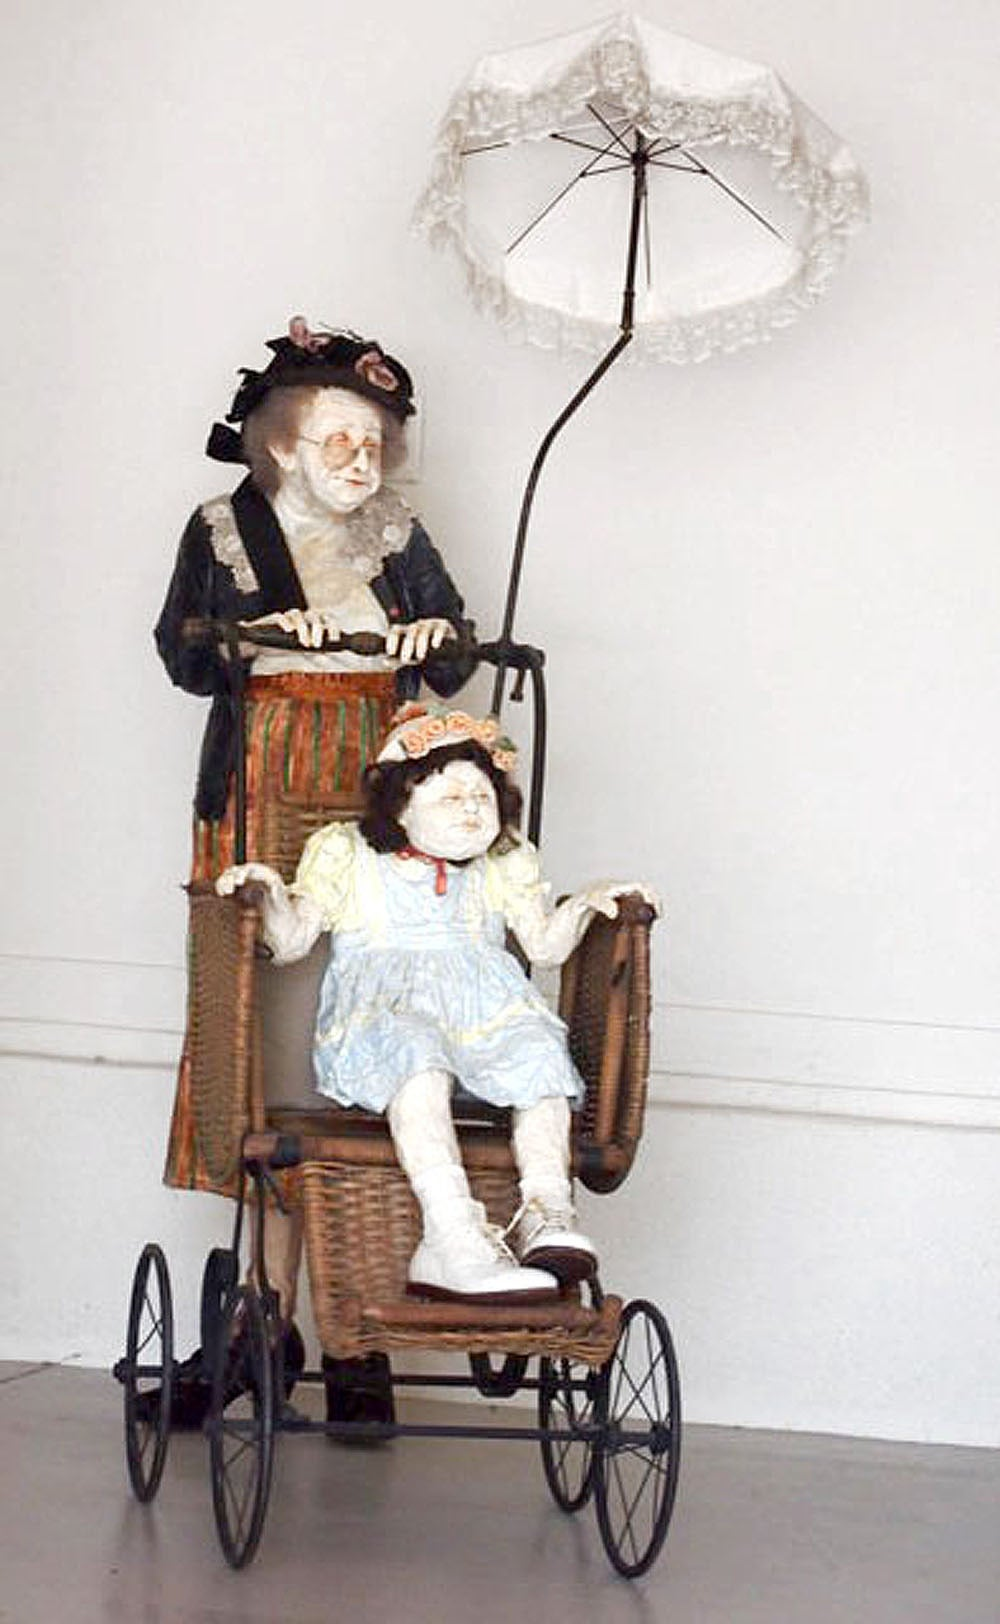 Kay Ritter - Nanny with Stroller 1